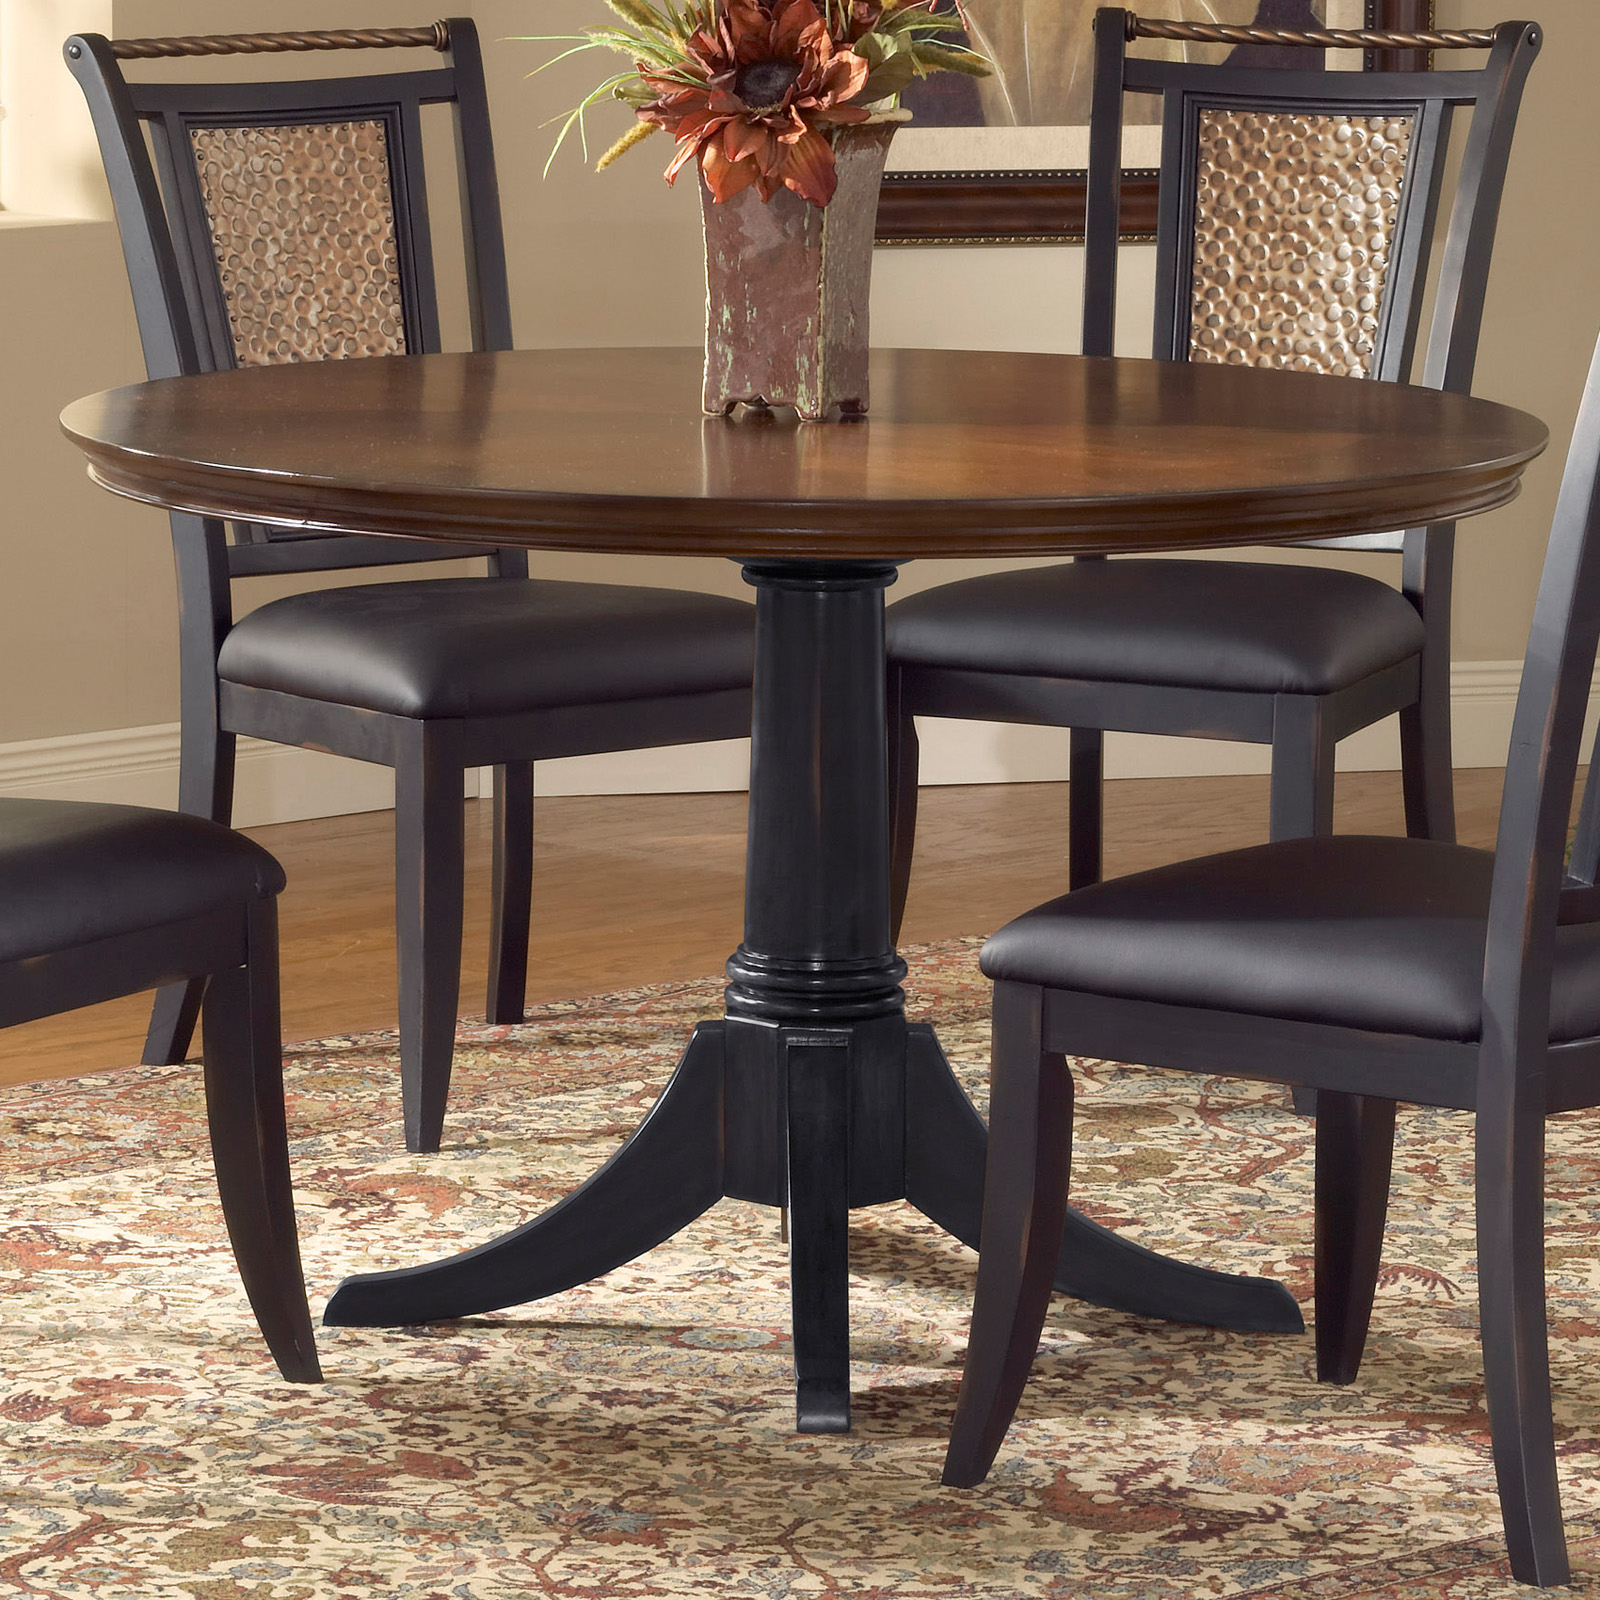 48 Inch Round Dining Table You Ll Love In 2021 Visualhunt